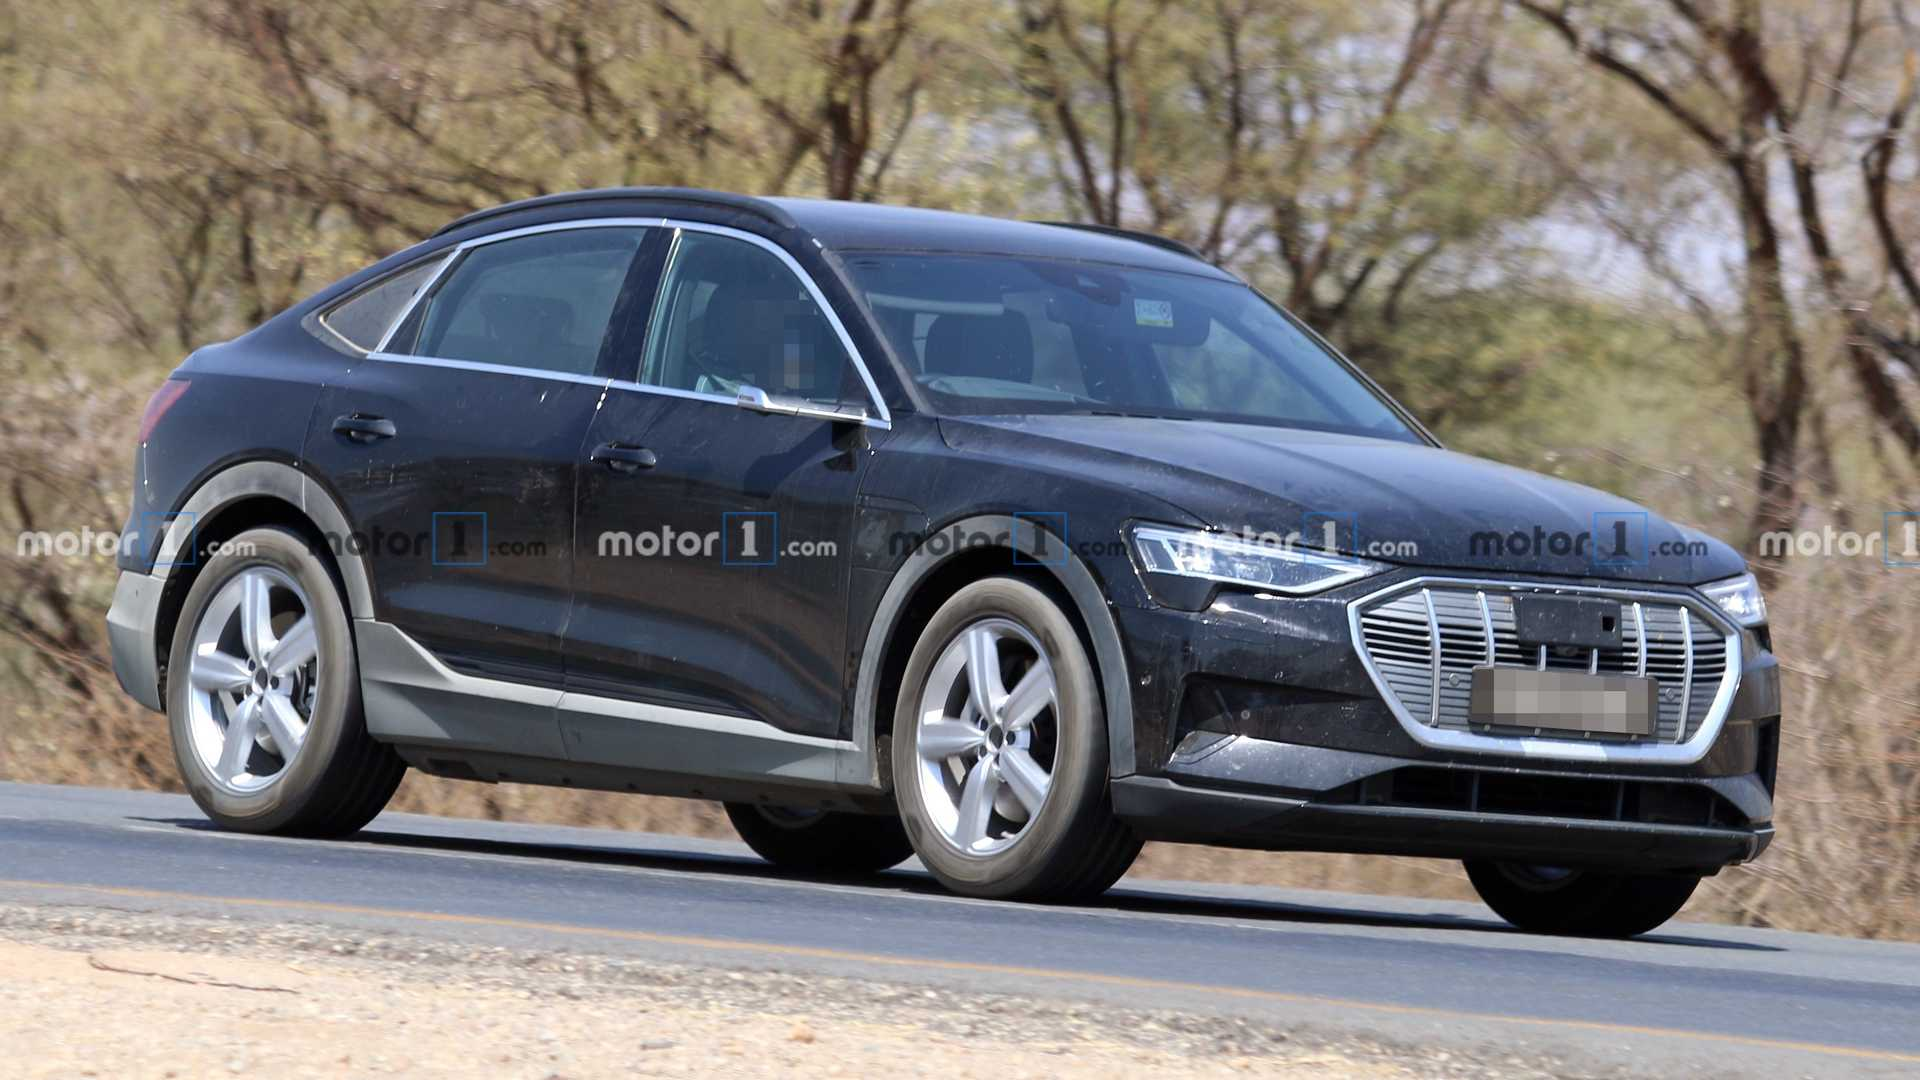 Audi E-Tron Sportback RHD caught with almost no camo